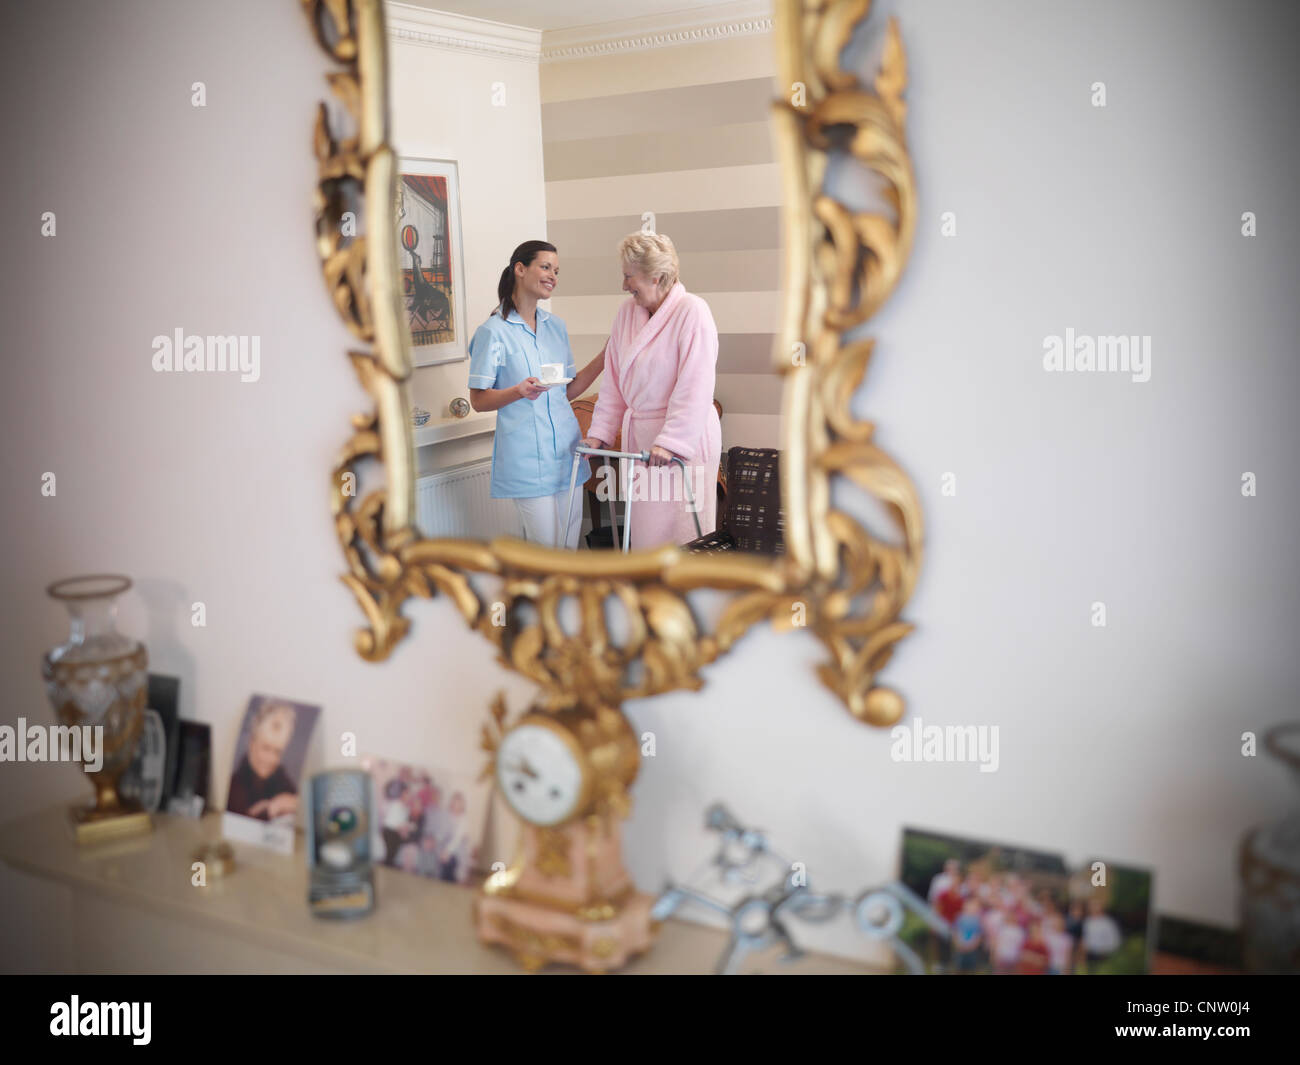 Nurse talking to older woman in house - Stock Image